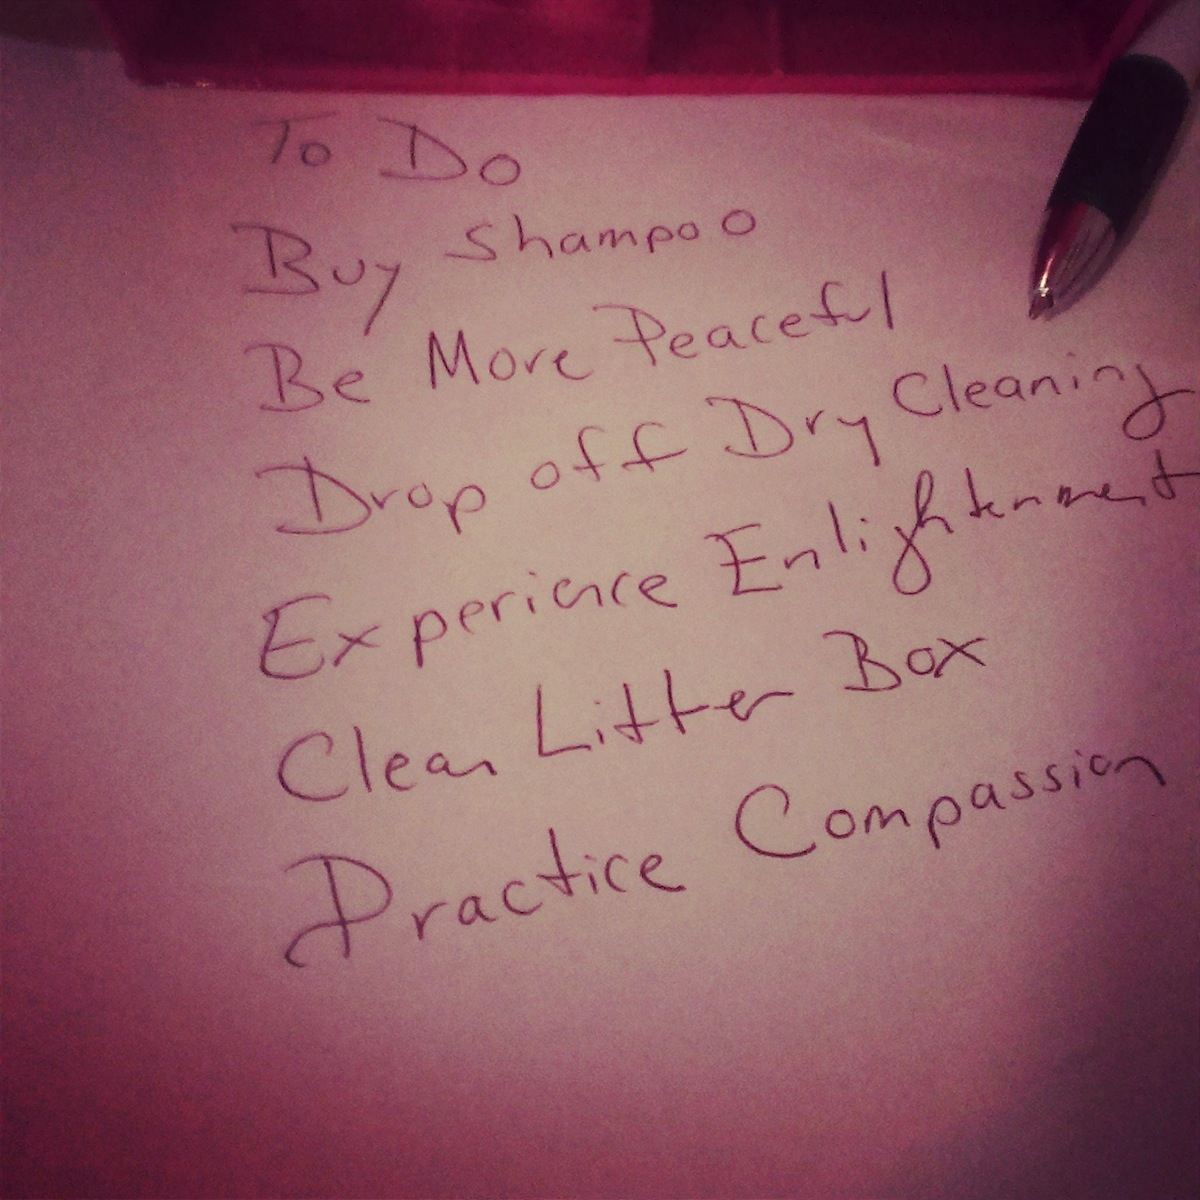 2014.15. To Do List